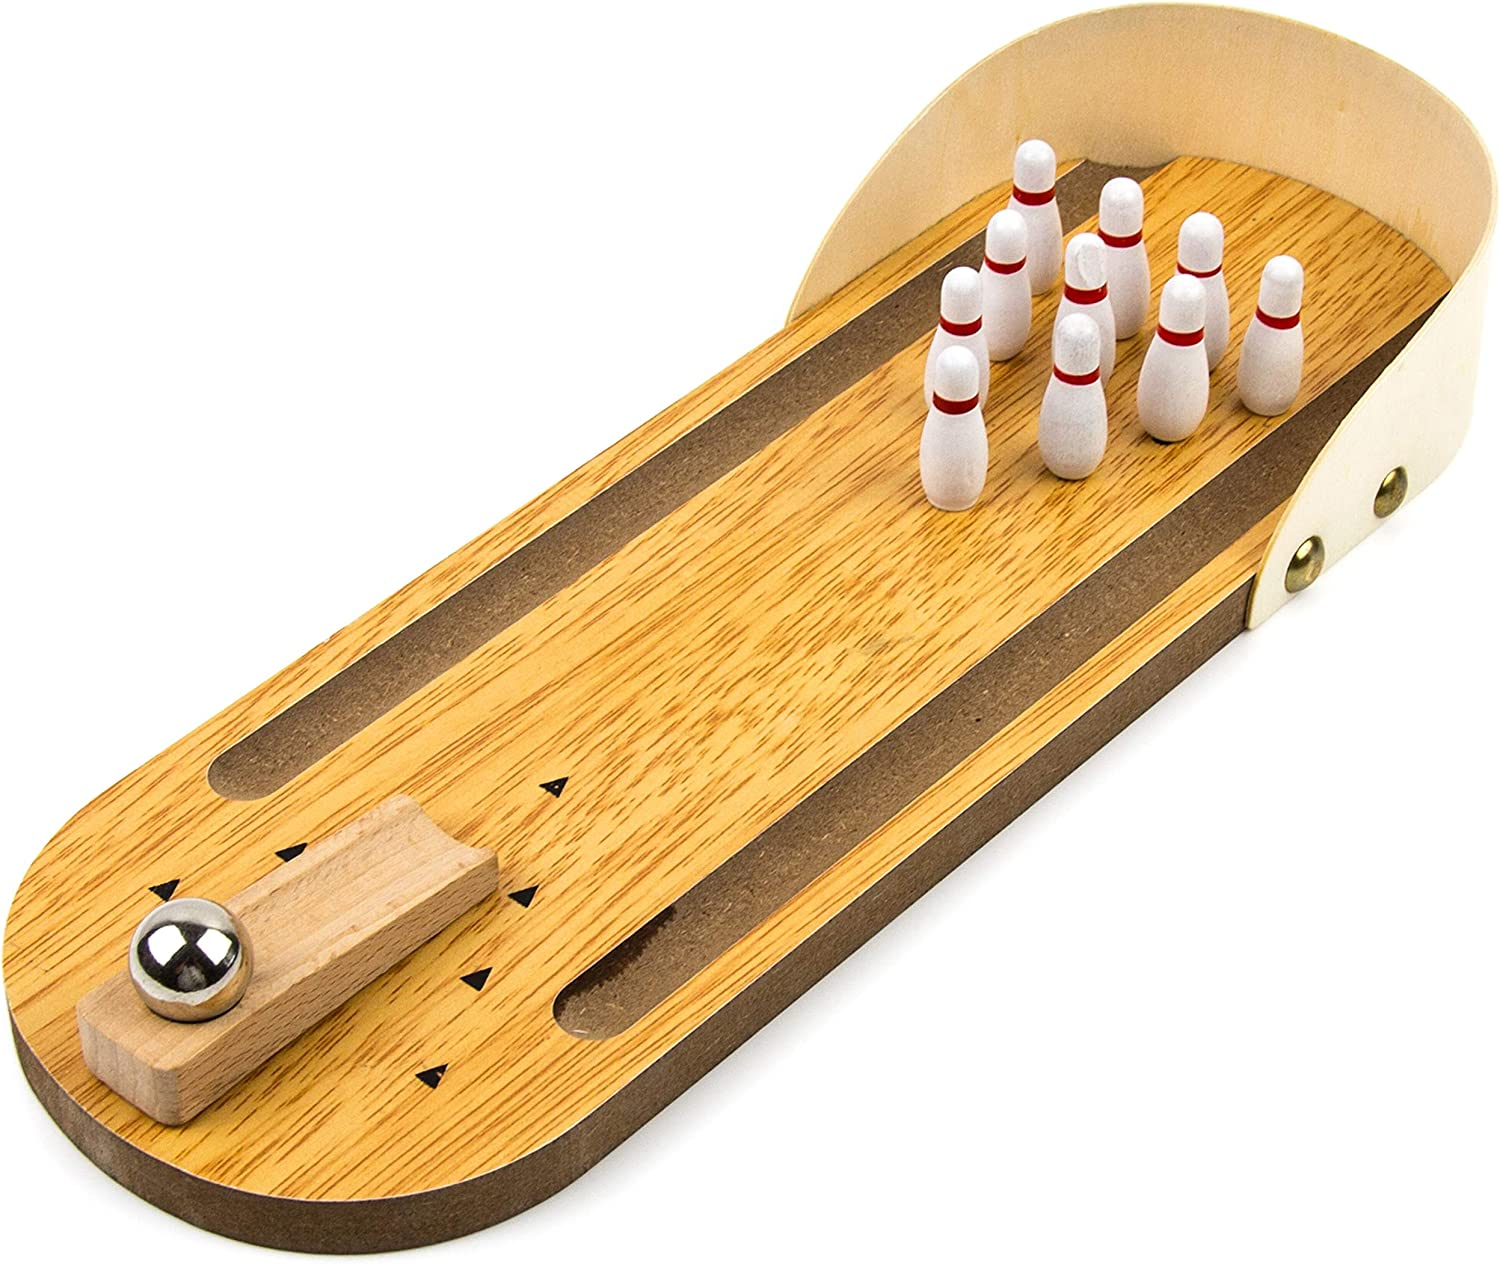 Toysery Wooden Mini Bowling Game - Premium Material, Safe for Kids - Best Indoor Game Ages - Easy to Set Up - Great Gift Idea